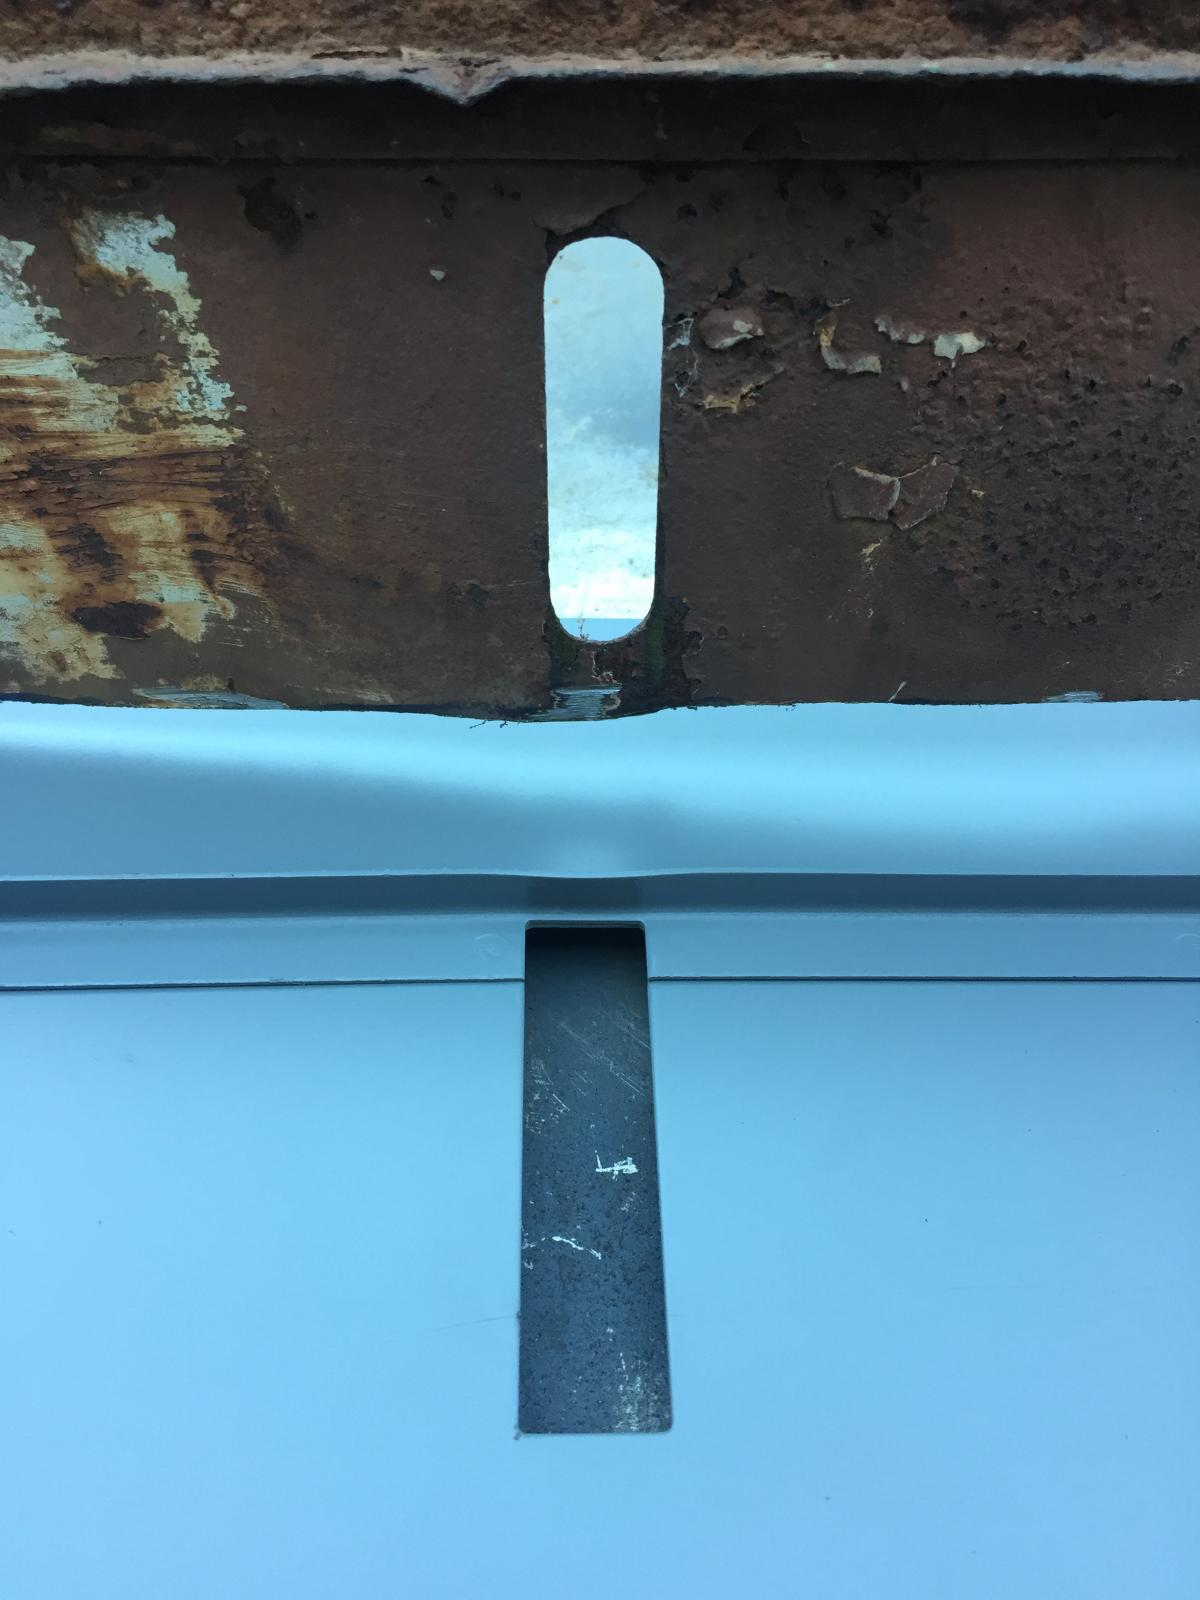 Pressed bumper bracket slotted hole vs later style big bumper slotted hole